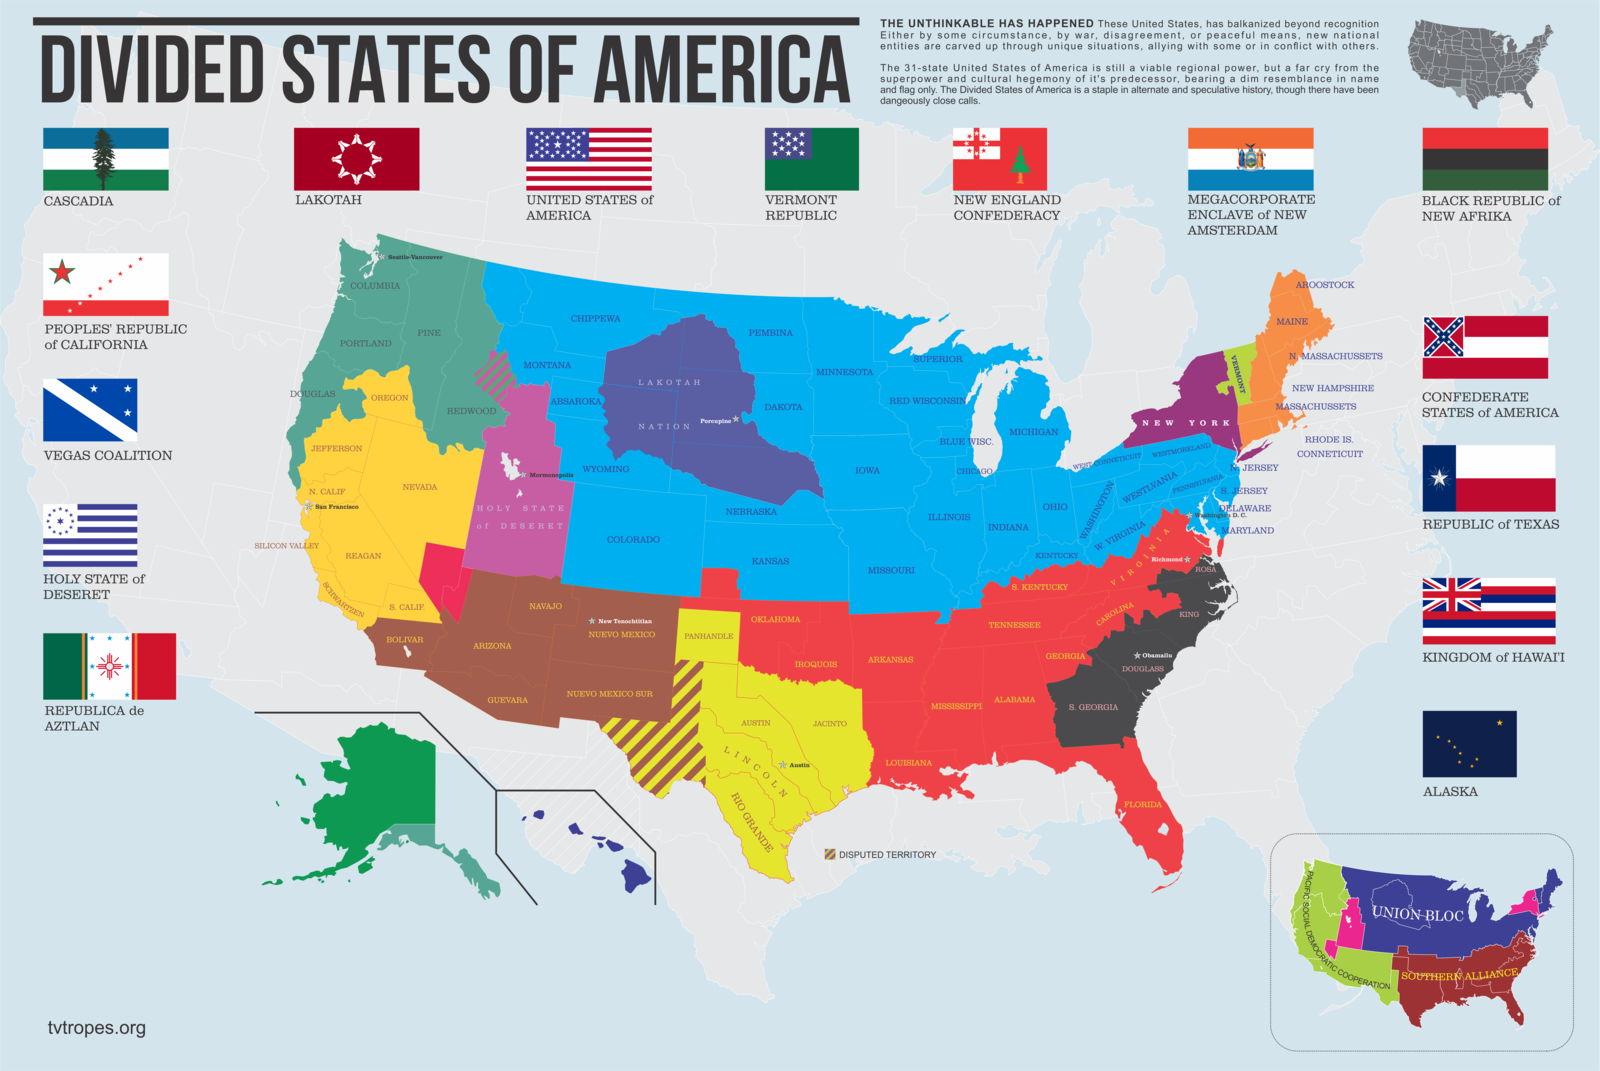 Divided States Of America Accdg To Tvtropes By Thadrummerdeviantart - Alternate-us-map